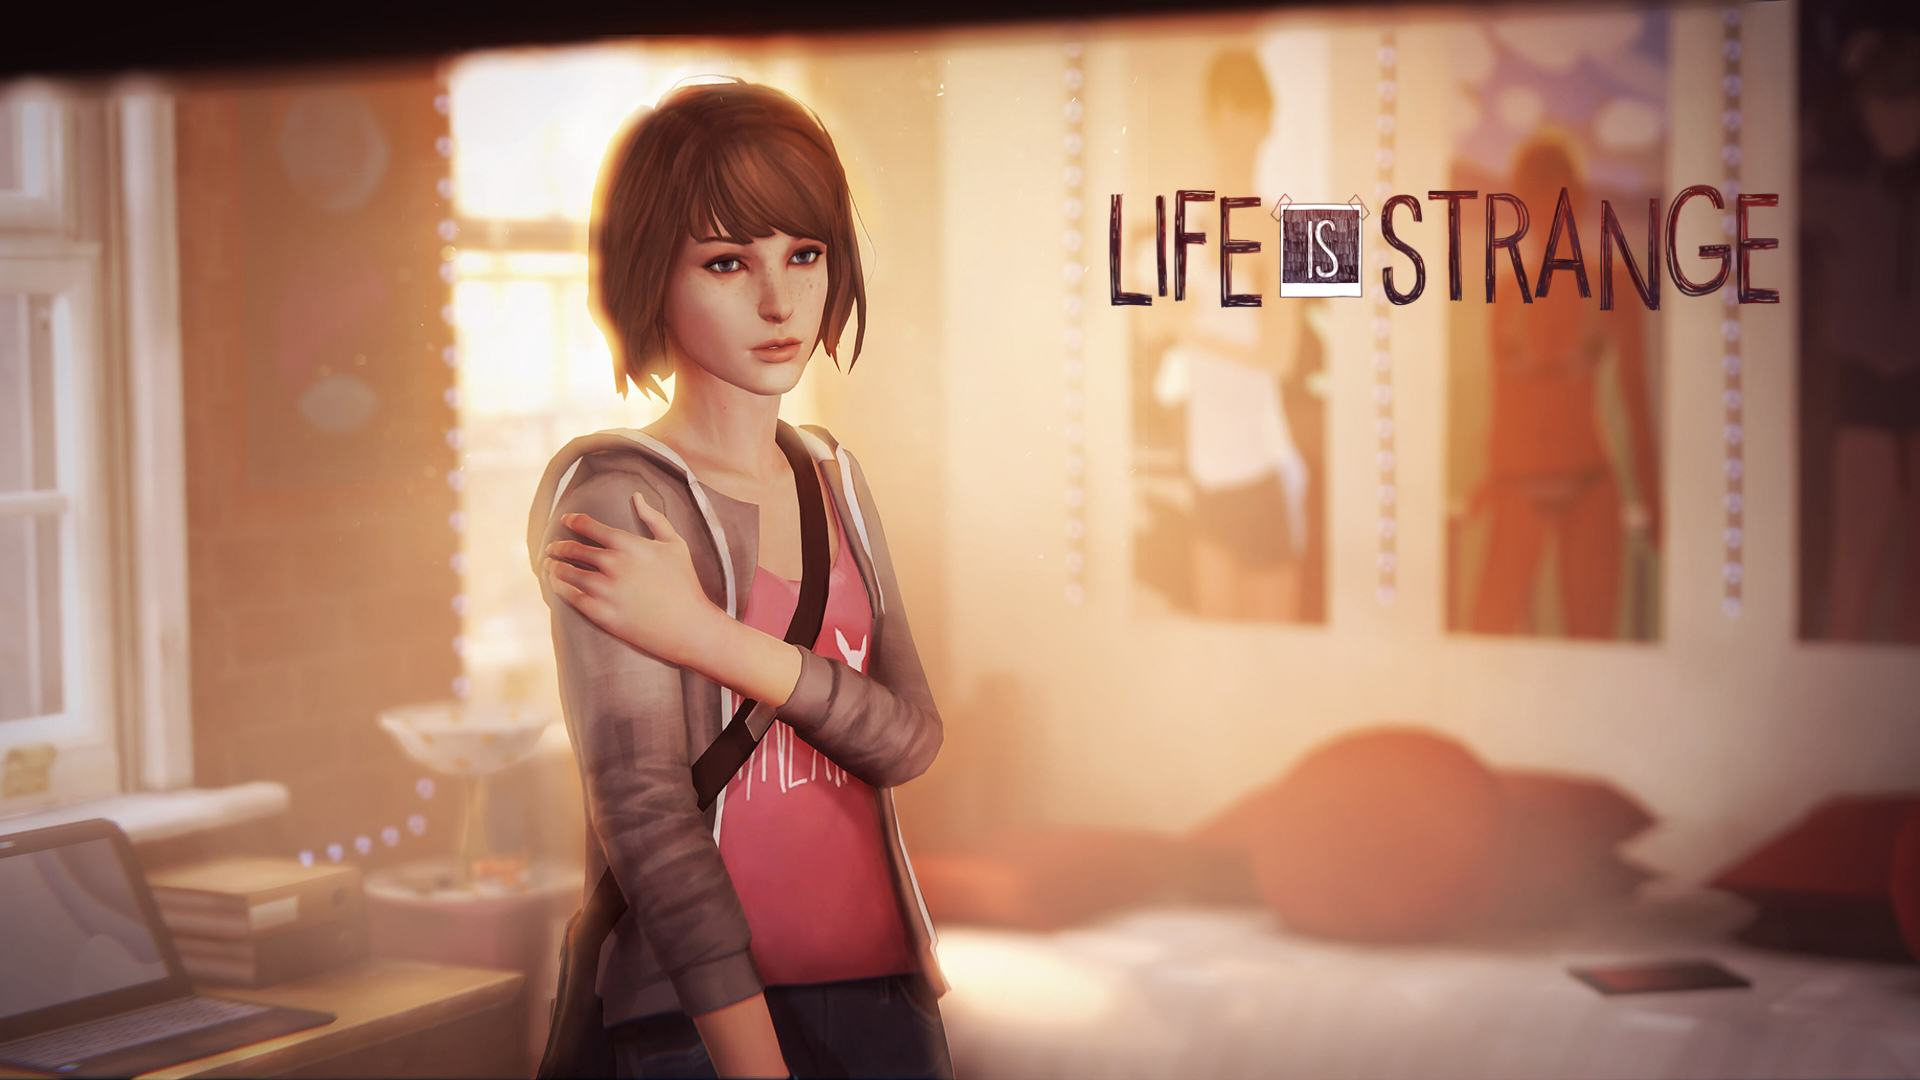 Life Is Strange To Get Limited Edition Physical Release In January UNILAD 014 content big9074